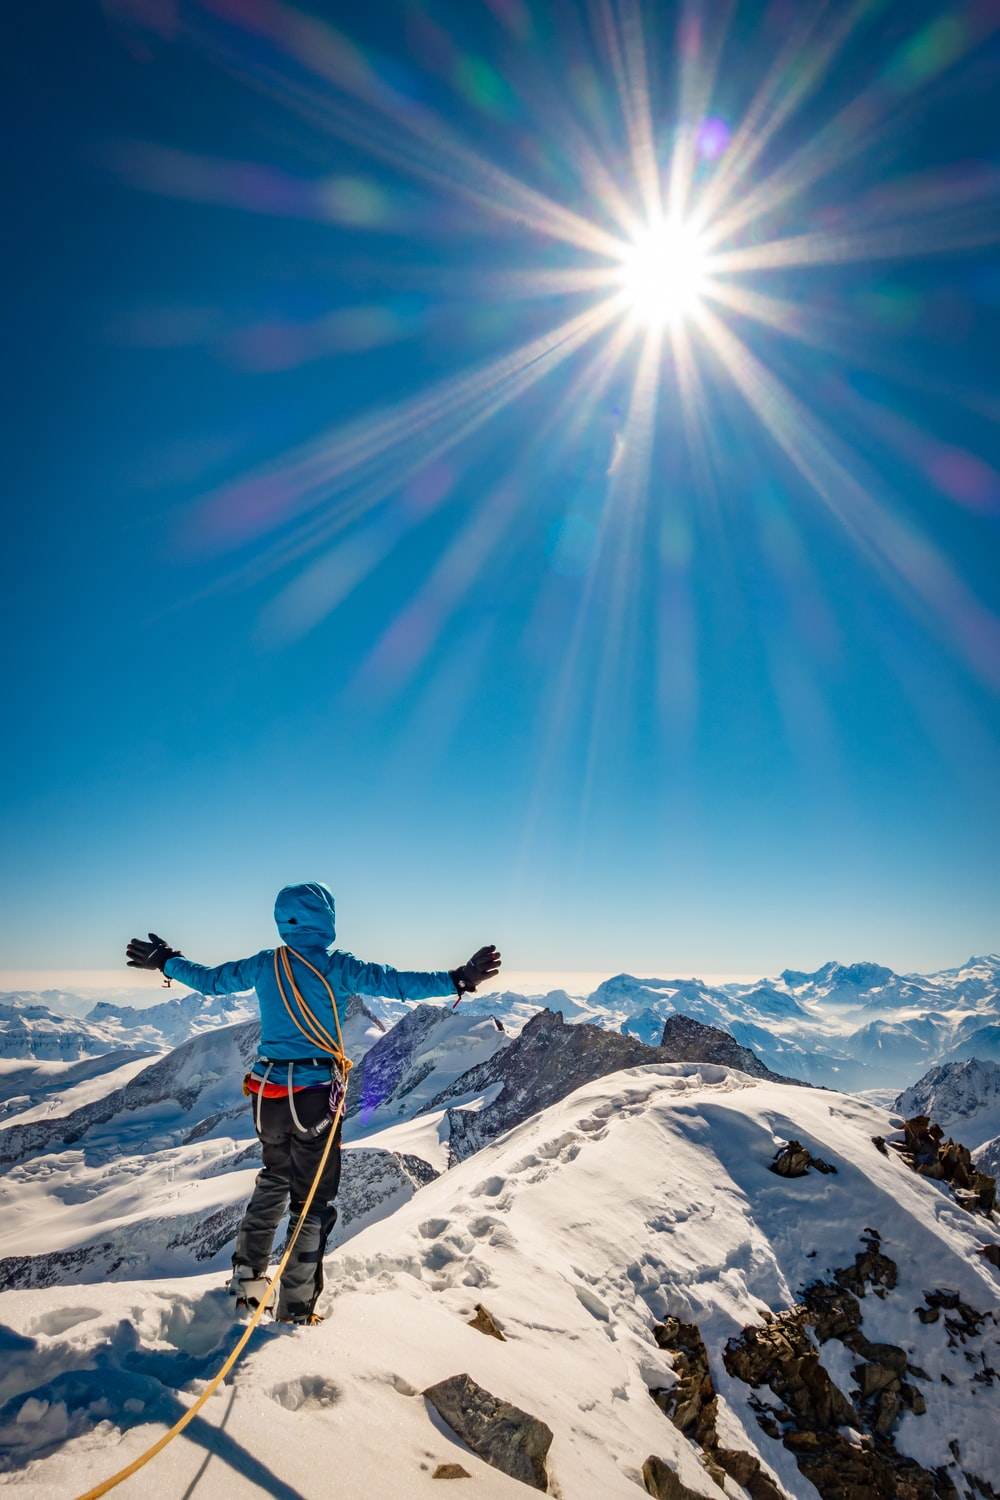 man in blue jacket and black pants standing on snow covered mountain under blue sky during